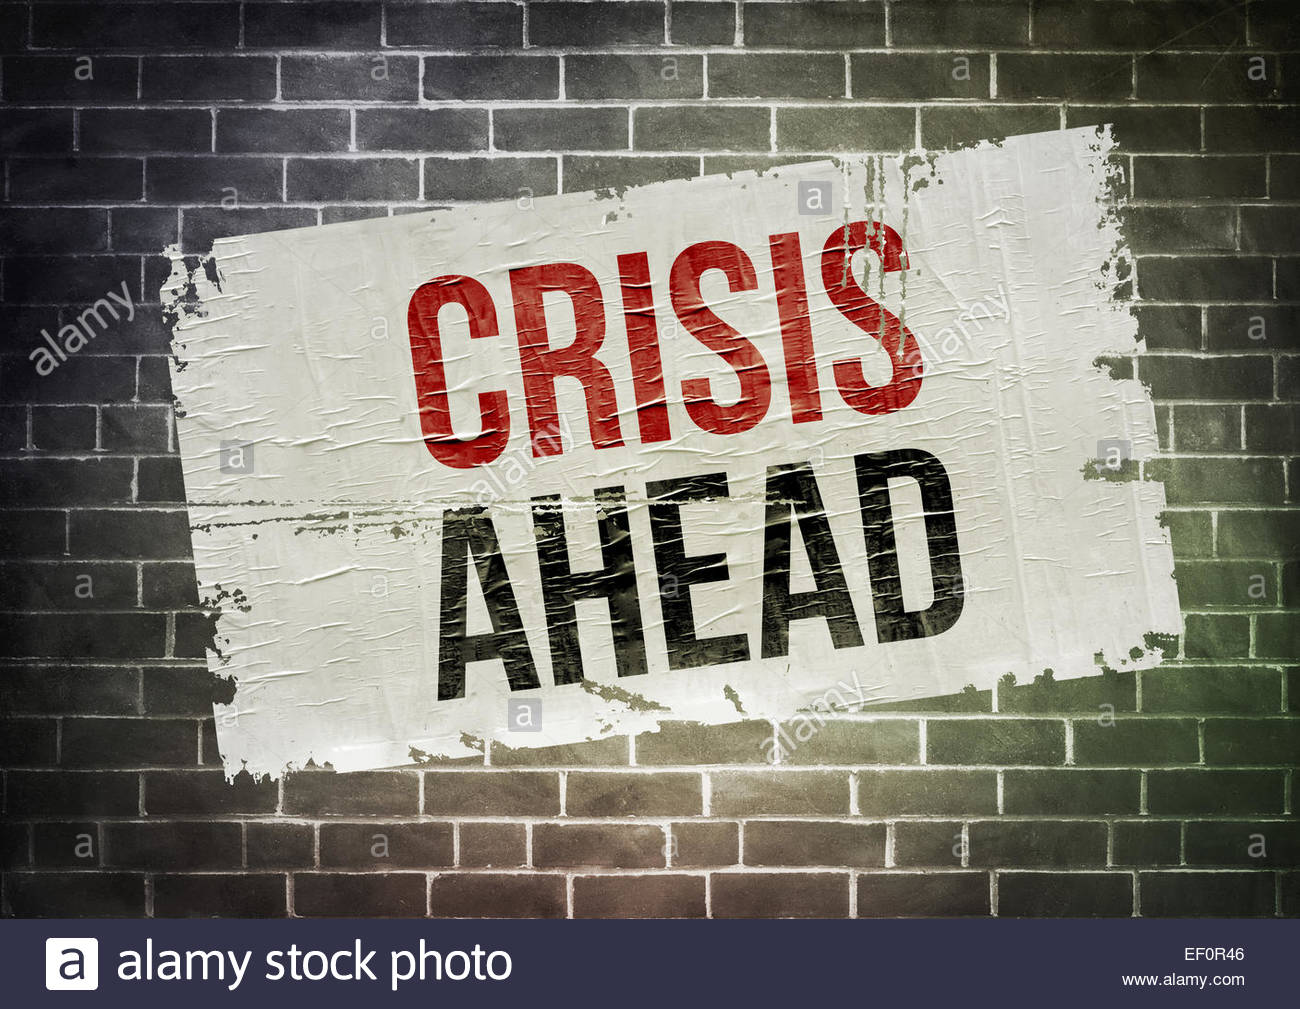 Crisis ahead poster concept - Stock Image